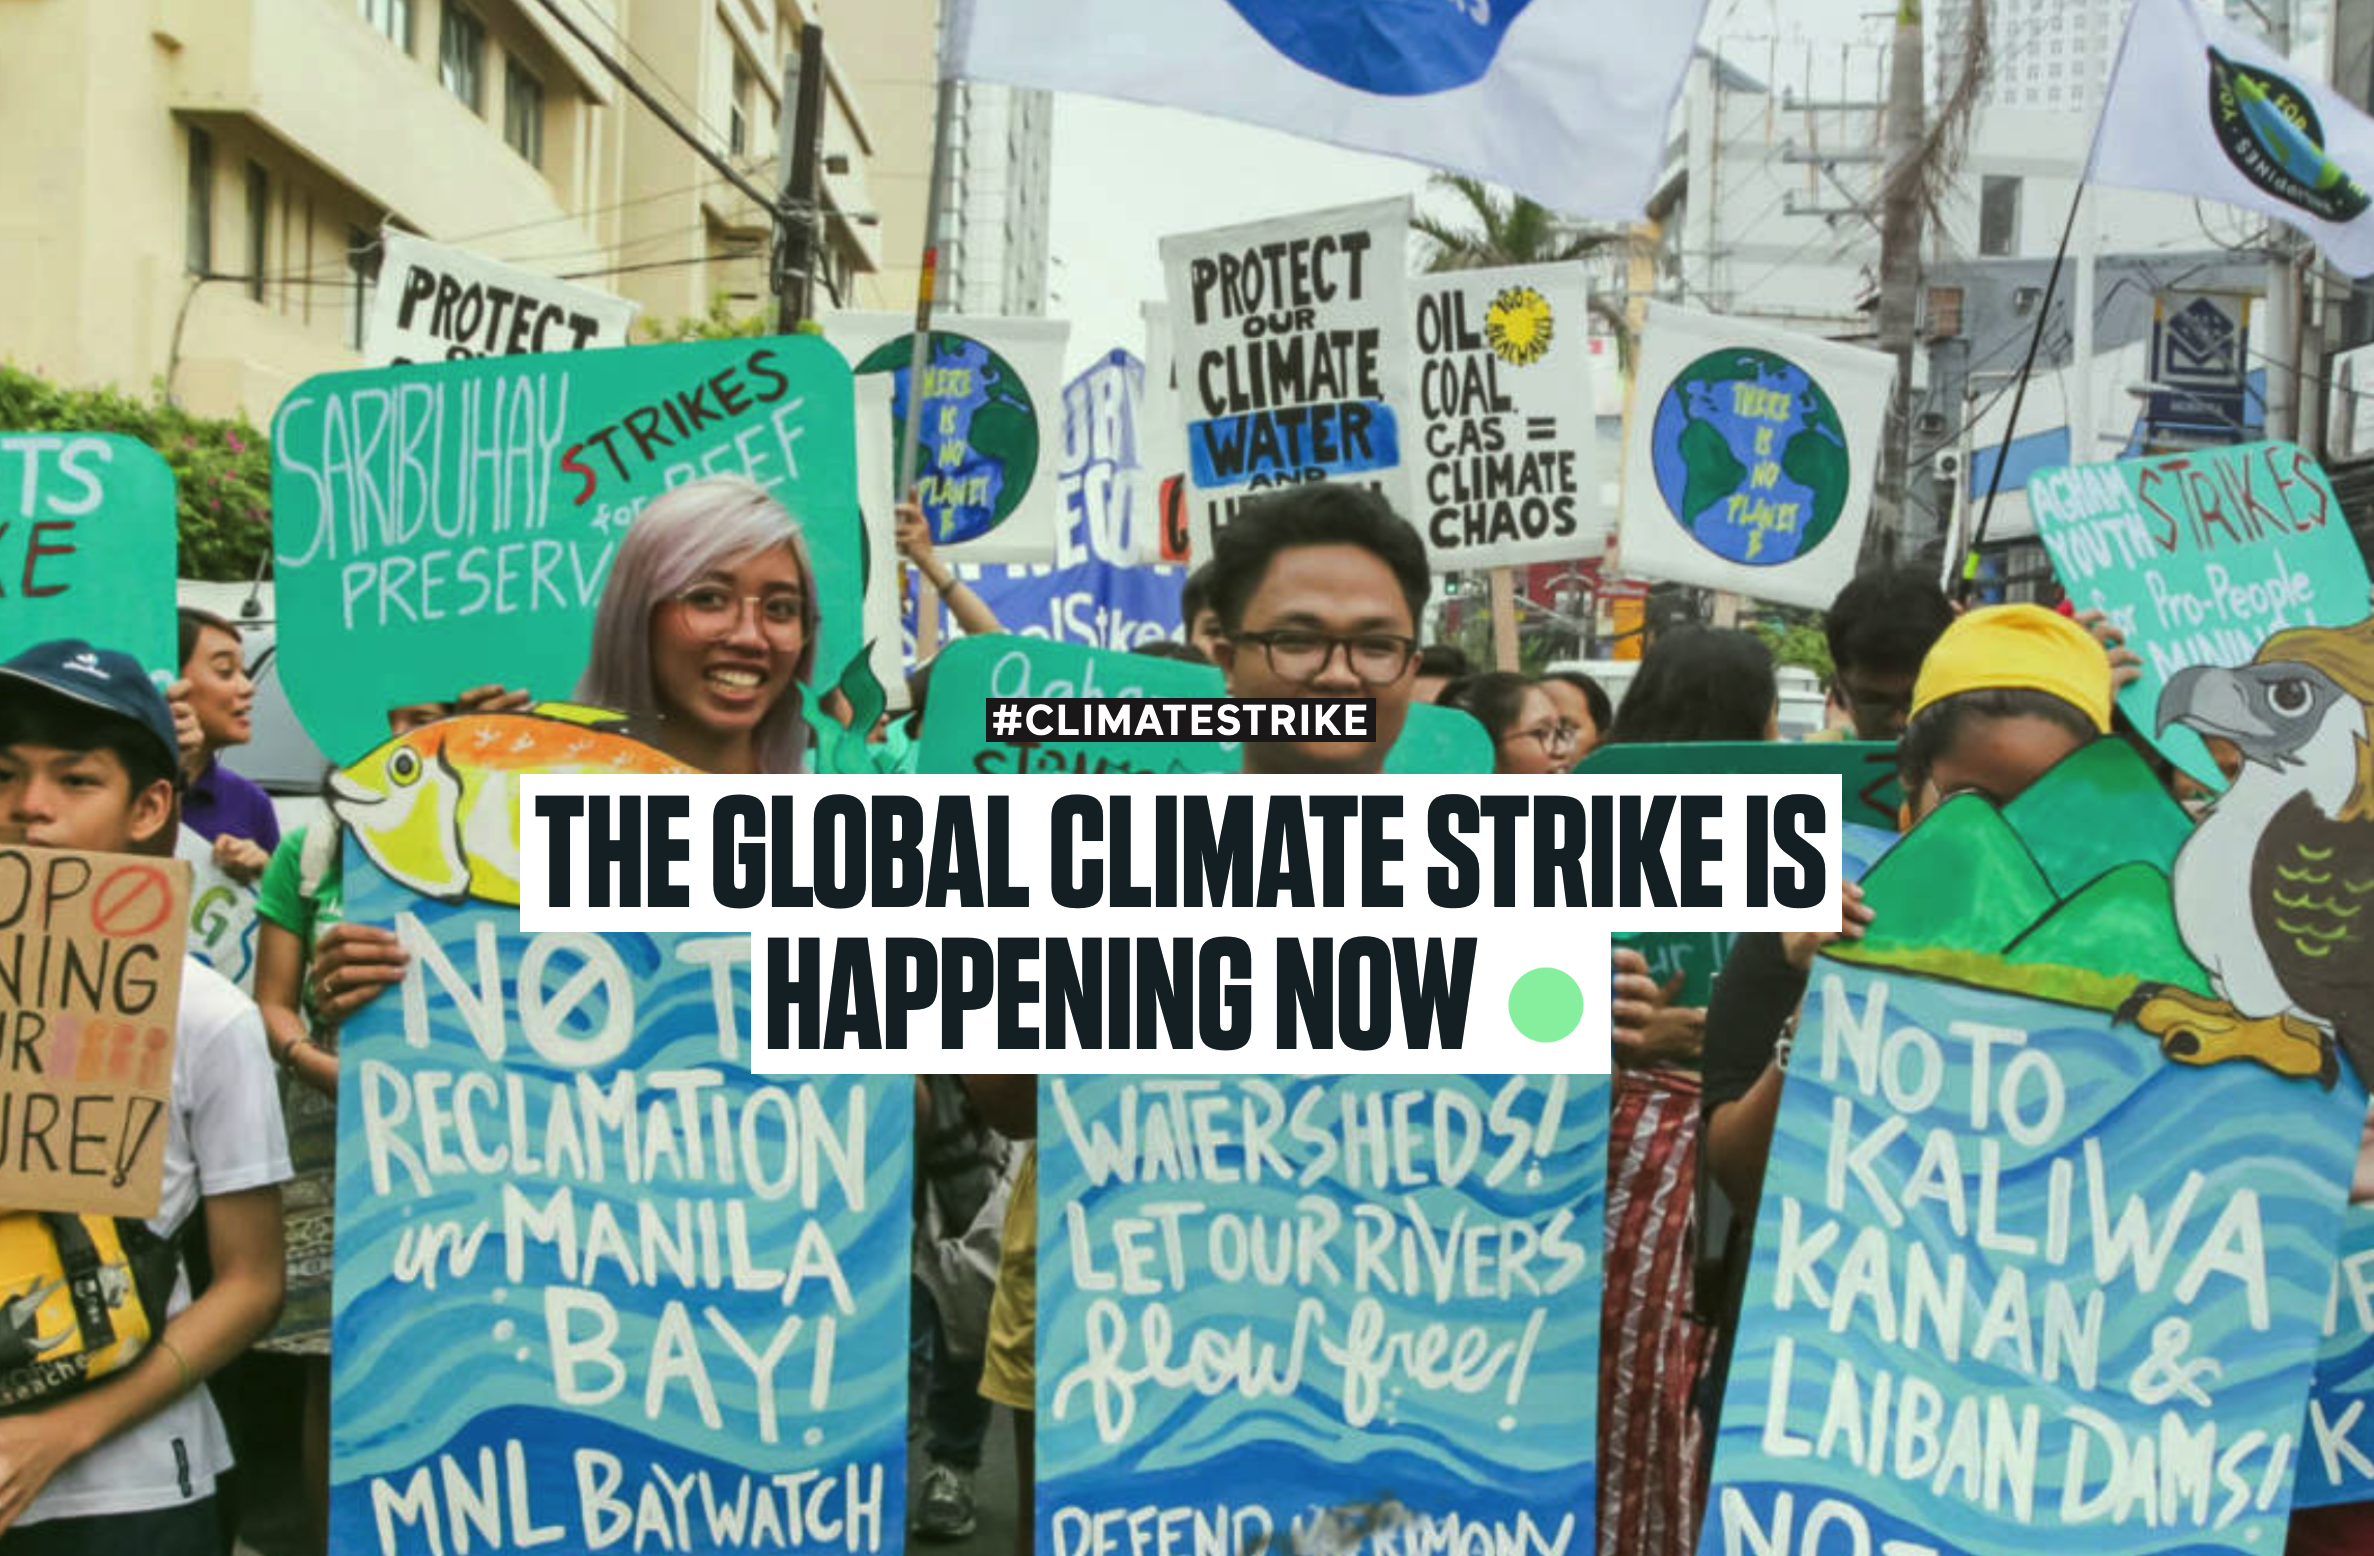 #ClimateStrike brings out millions around the world demanding action on climate policies